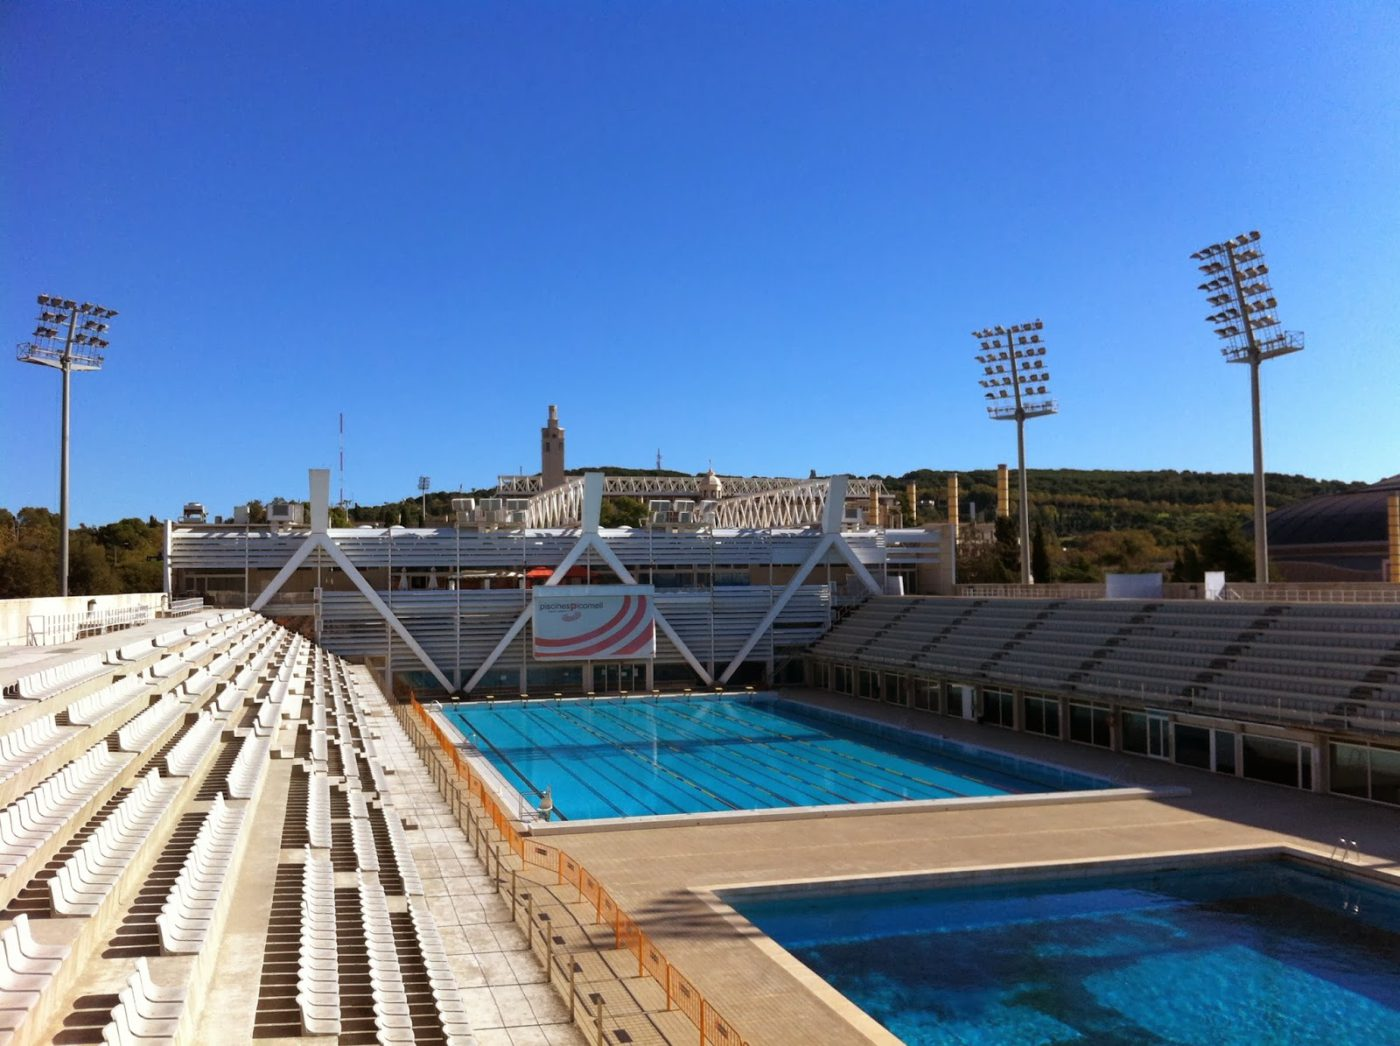 The olympic barcelona for your audiovisual productions for Piscines picornell